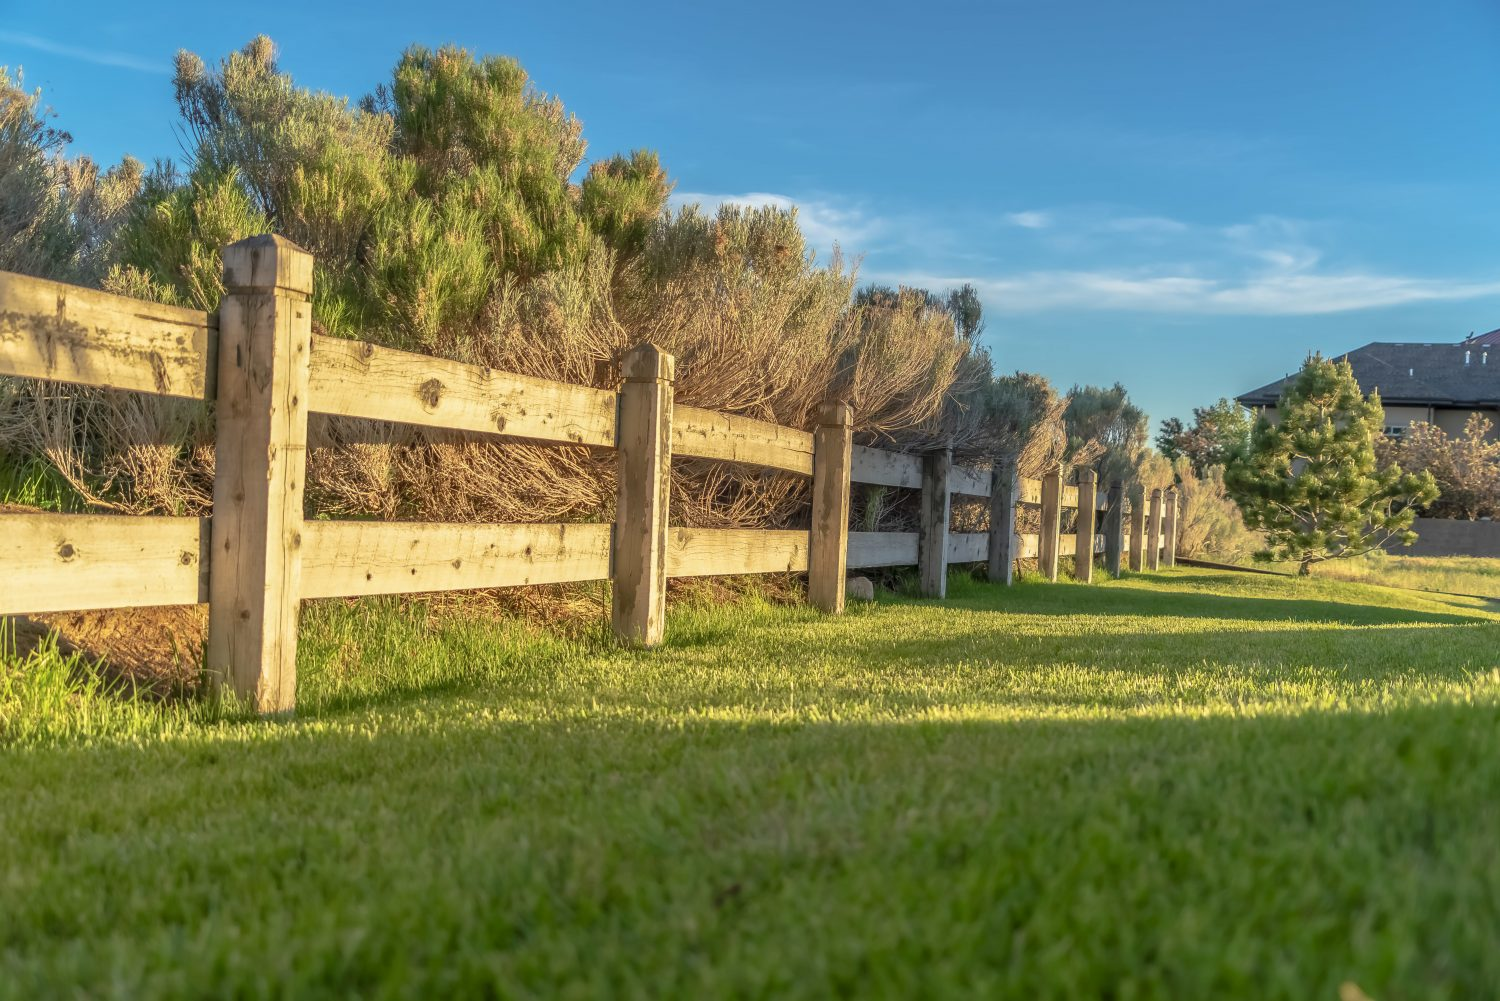 Paddock Fencing In A Grass Field